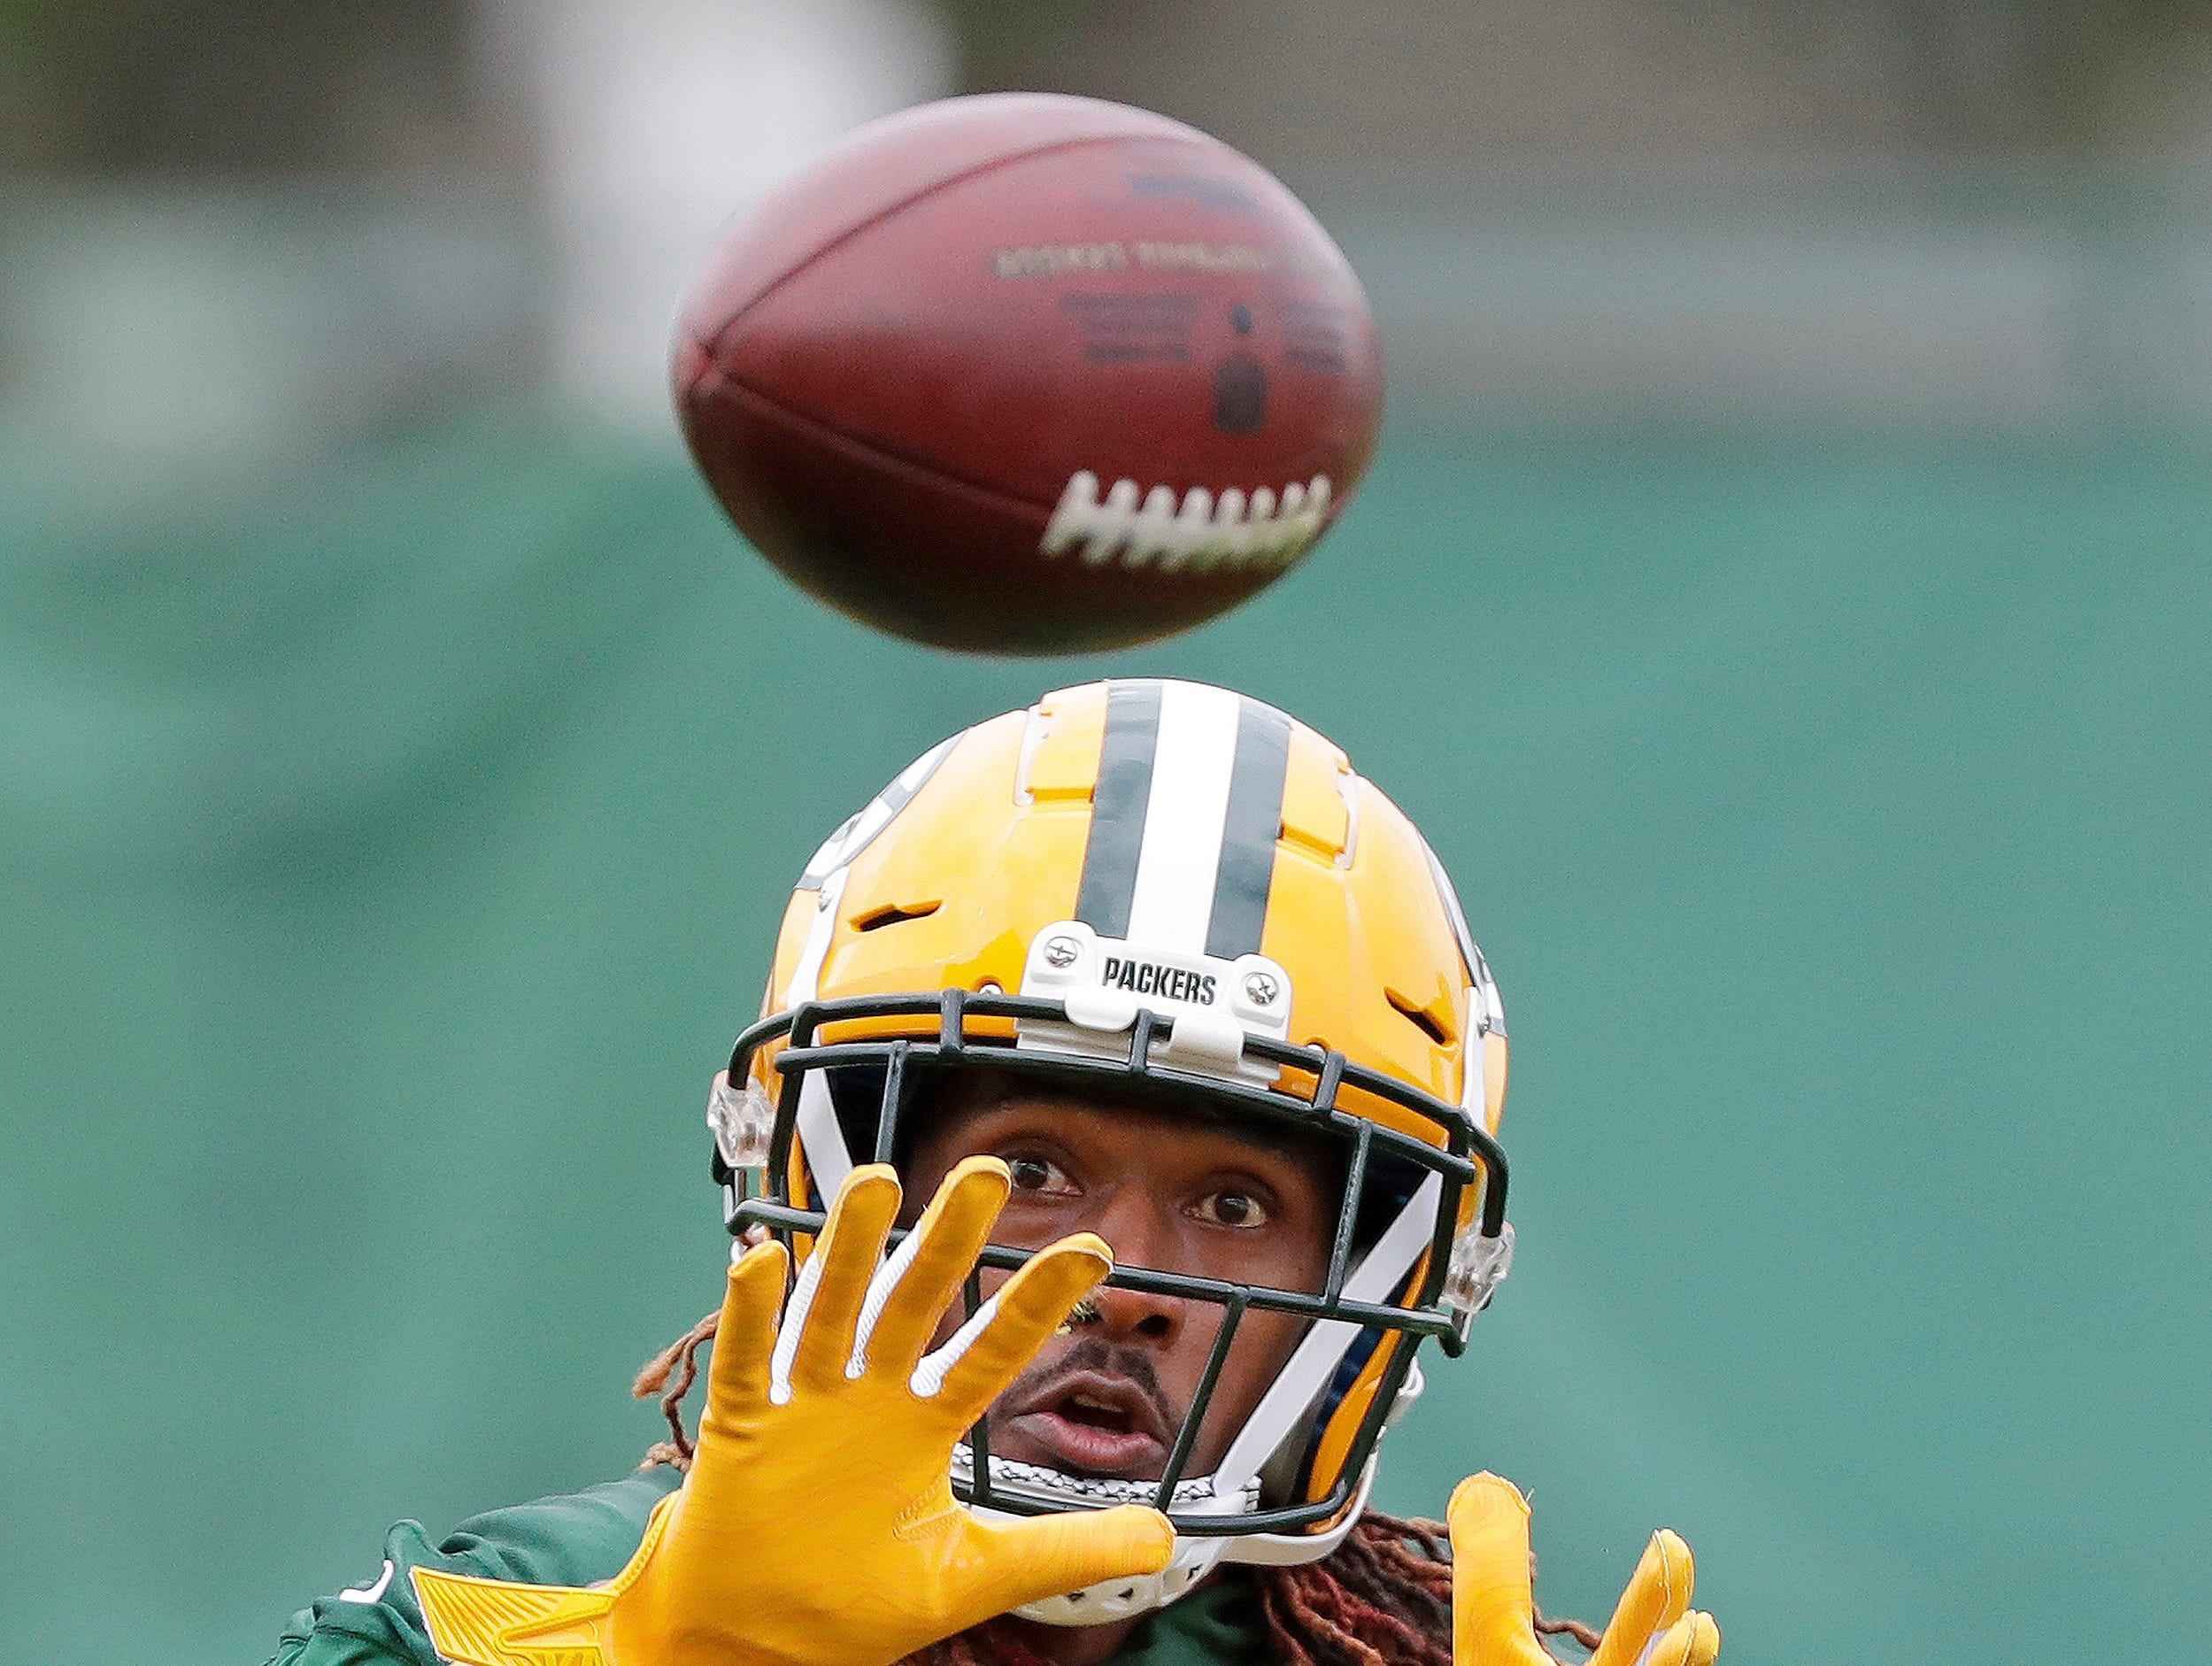 Green Bay Packers defensive back Tramon Williams (38) catches a pass during practice Wednesday, October 3, 2018 at Clarke Hinkle Field in Ashwaubenon, Wis.